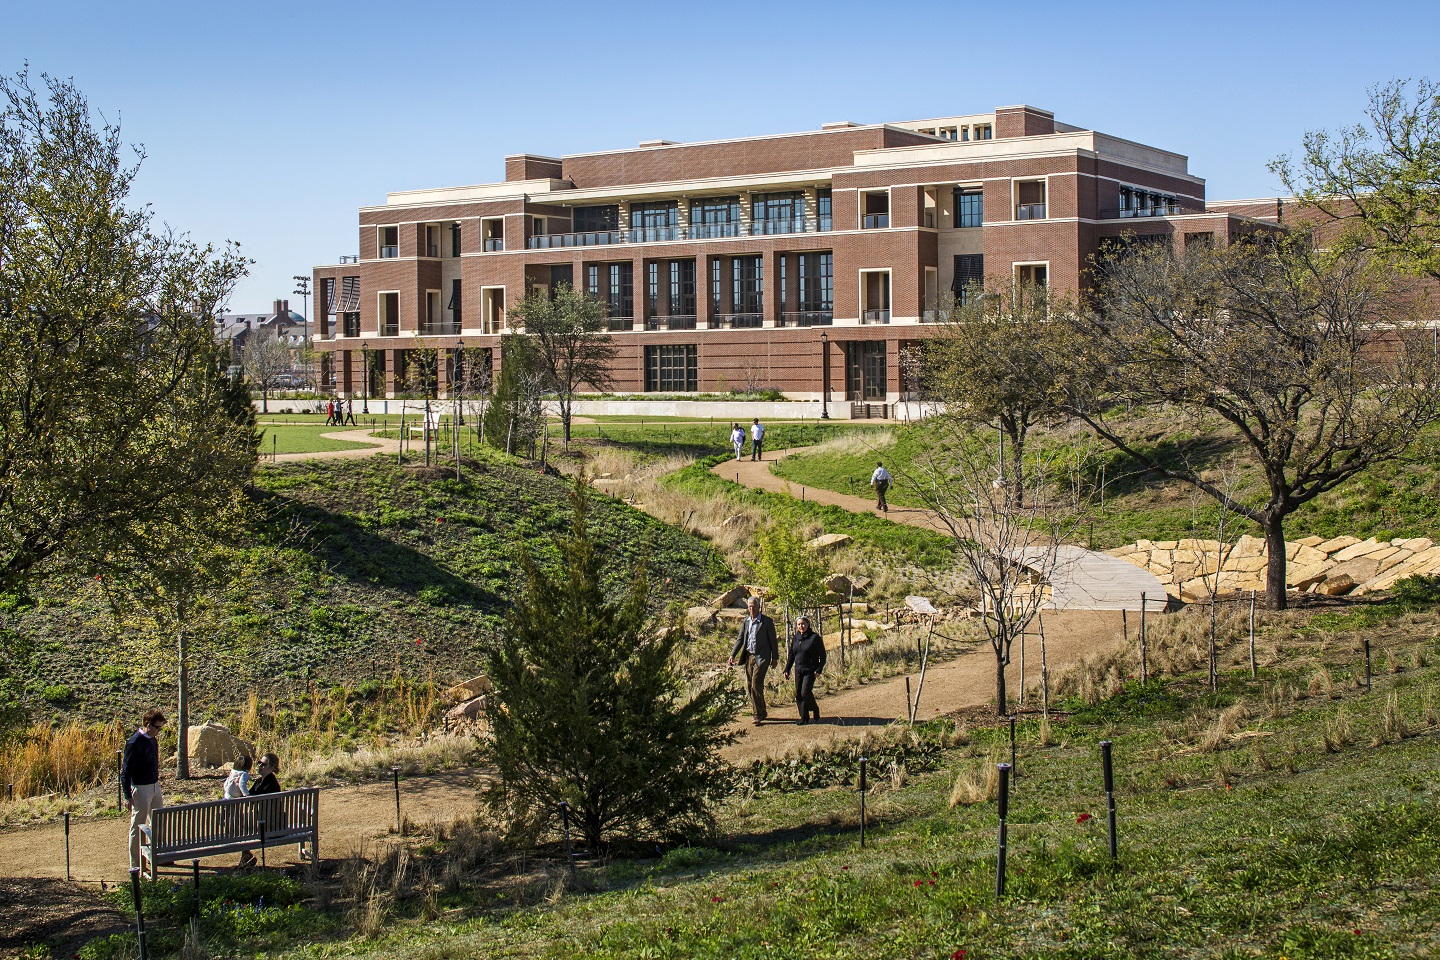 At SMU's Community Day, families can hunt for blooms on a wildflower scavenger hunt, plant wildflower seeds to bring home and enjoy SMU student musical performances at the Native Texas Park at the George W. Bush Presidential Center.